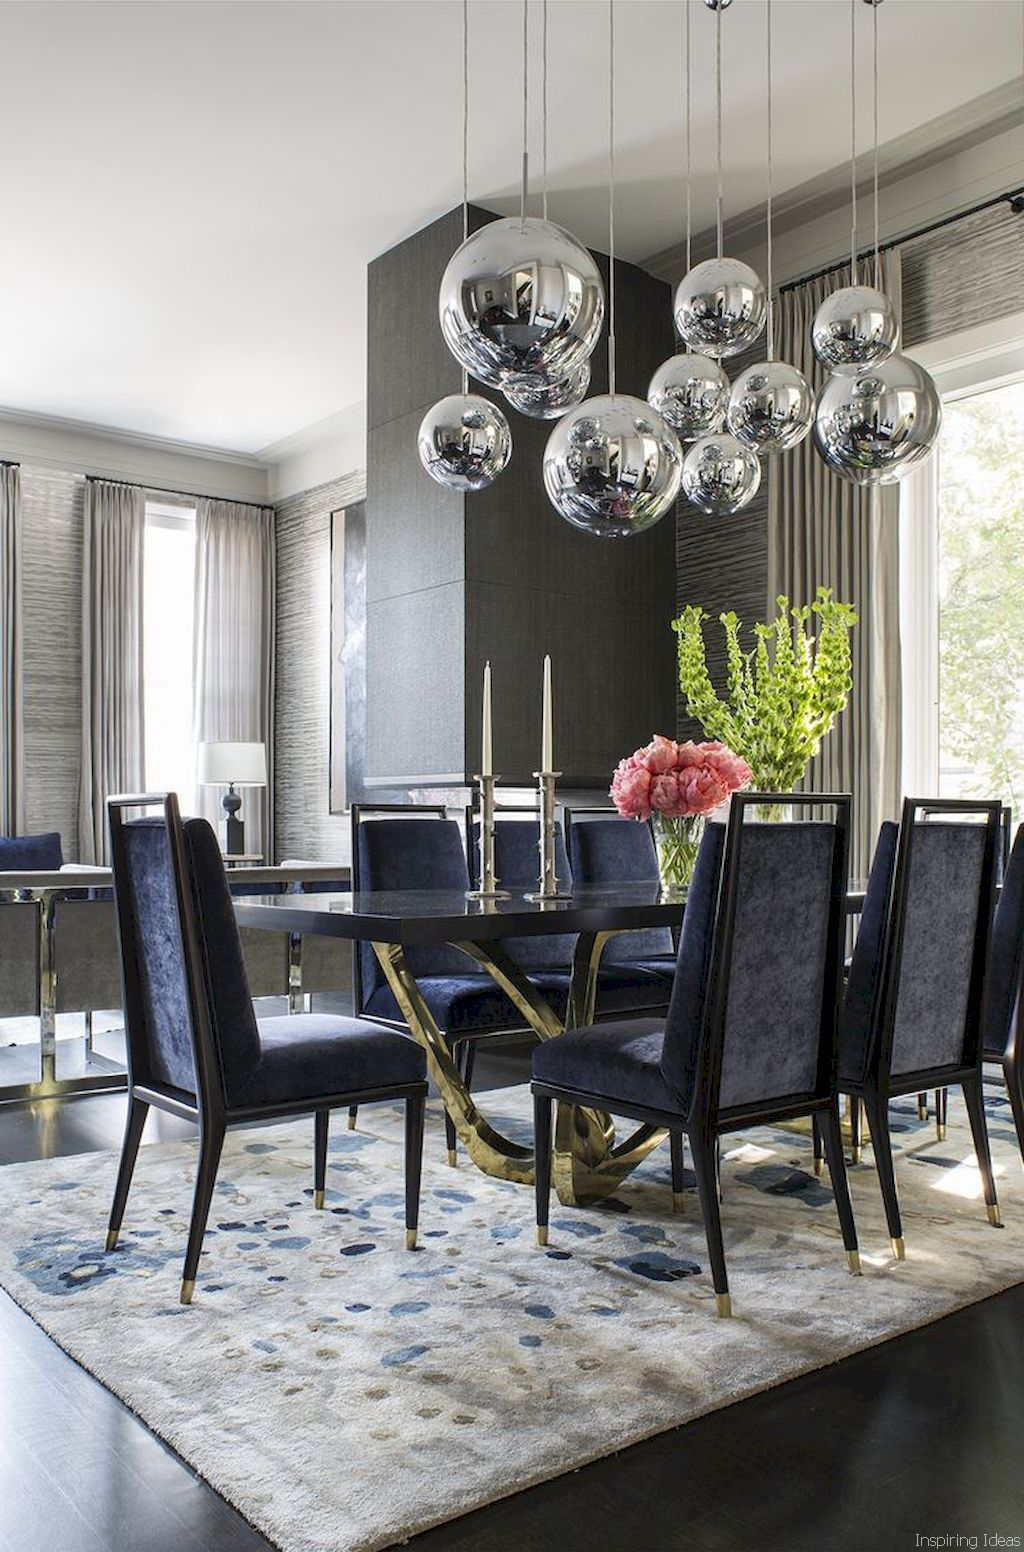 Lighting For Dining Room Contemporary Dining Room Design Luxury Dining Room Elegant Dining Room